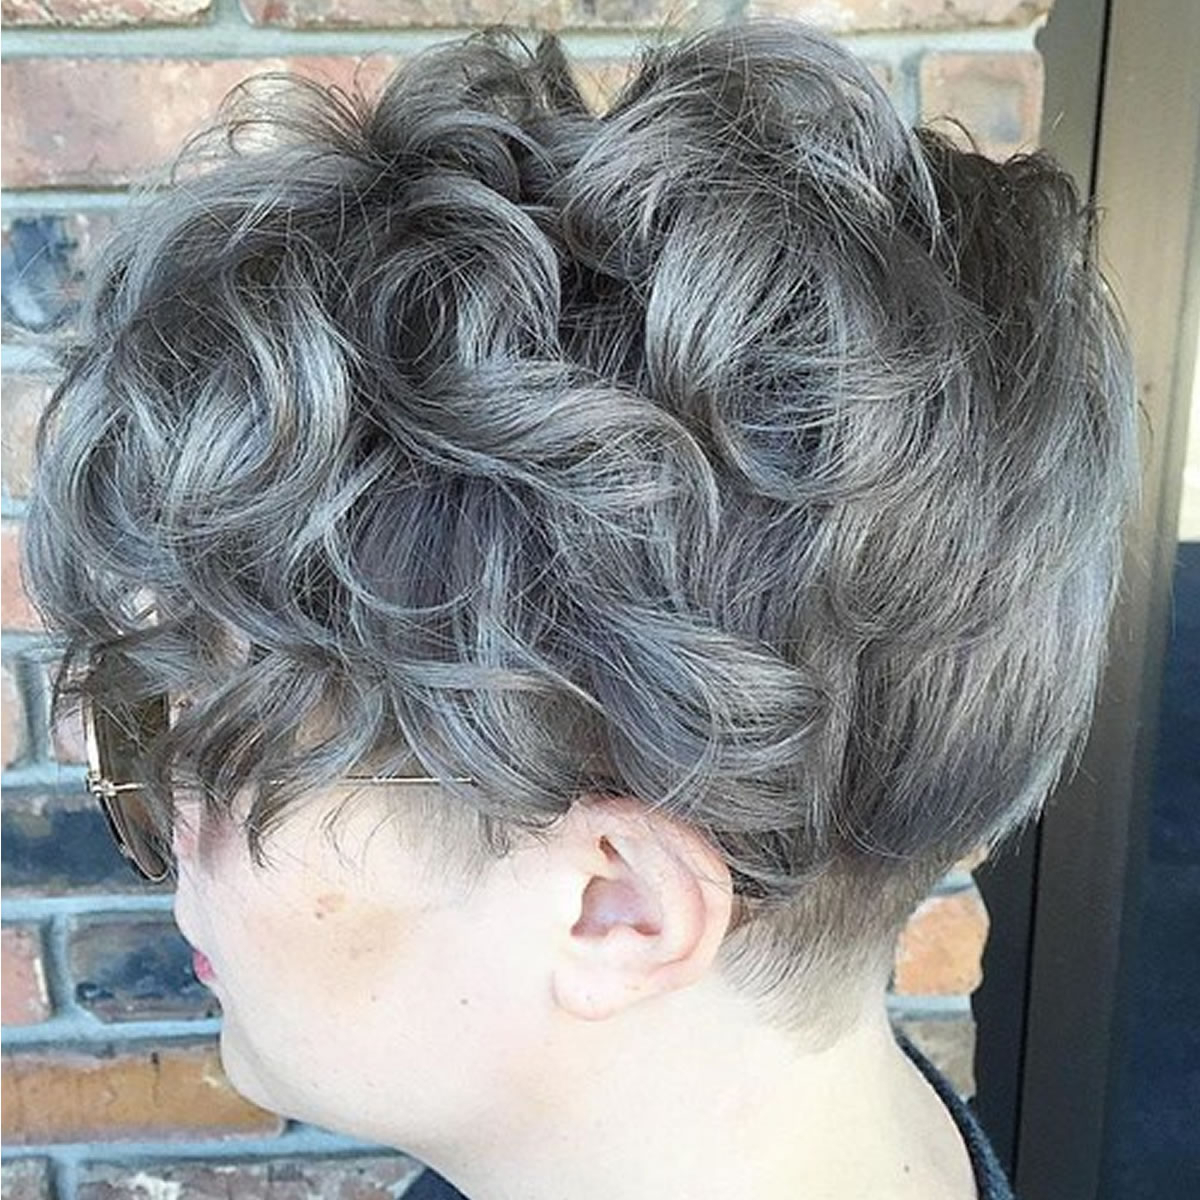 Short Grey Curly Silver Hairstyles – Hairstyles Within Curly Grayhairstyles (View 16 of 20)